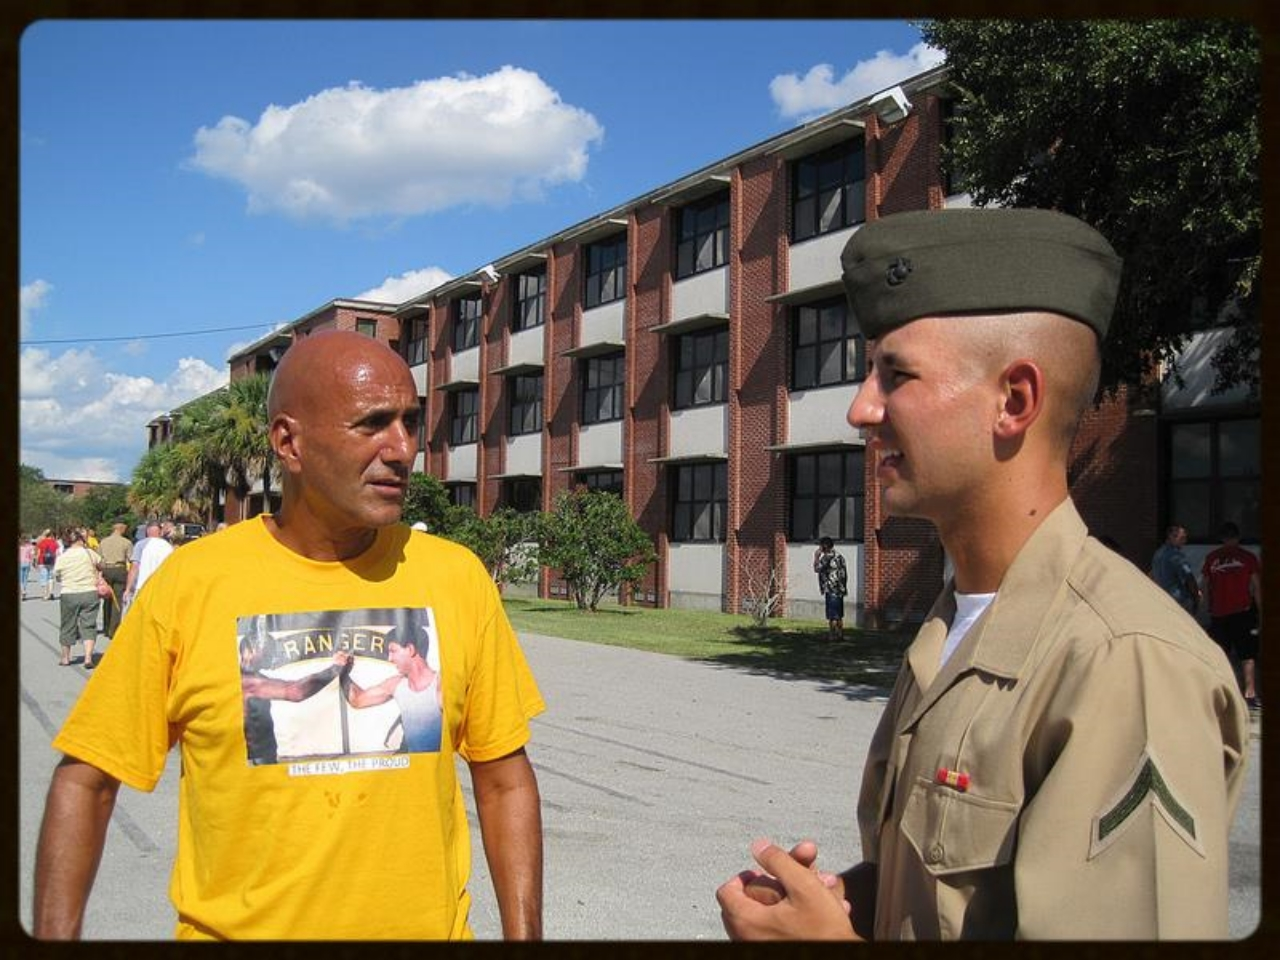 Thursday, September 16, 2010. With my son, Lance Corporal Mike Ankony, US Marine Corps Recruit Depot, Parris Island, South Carolina.